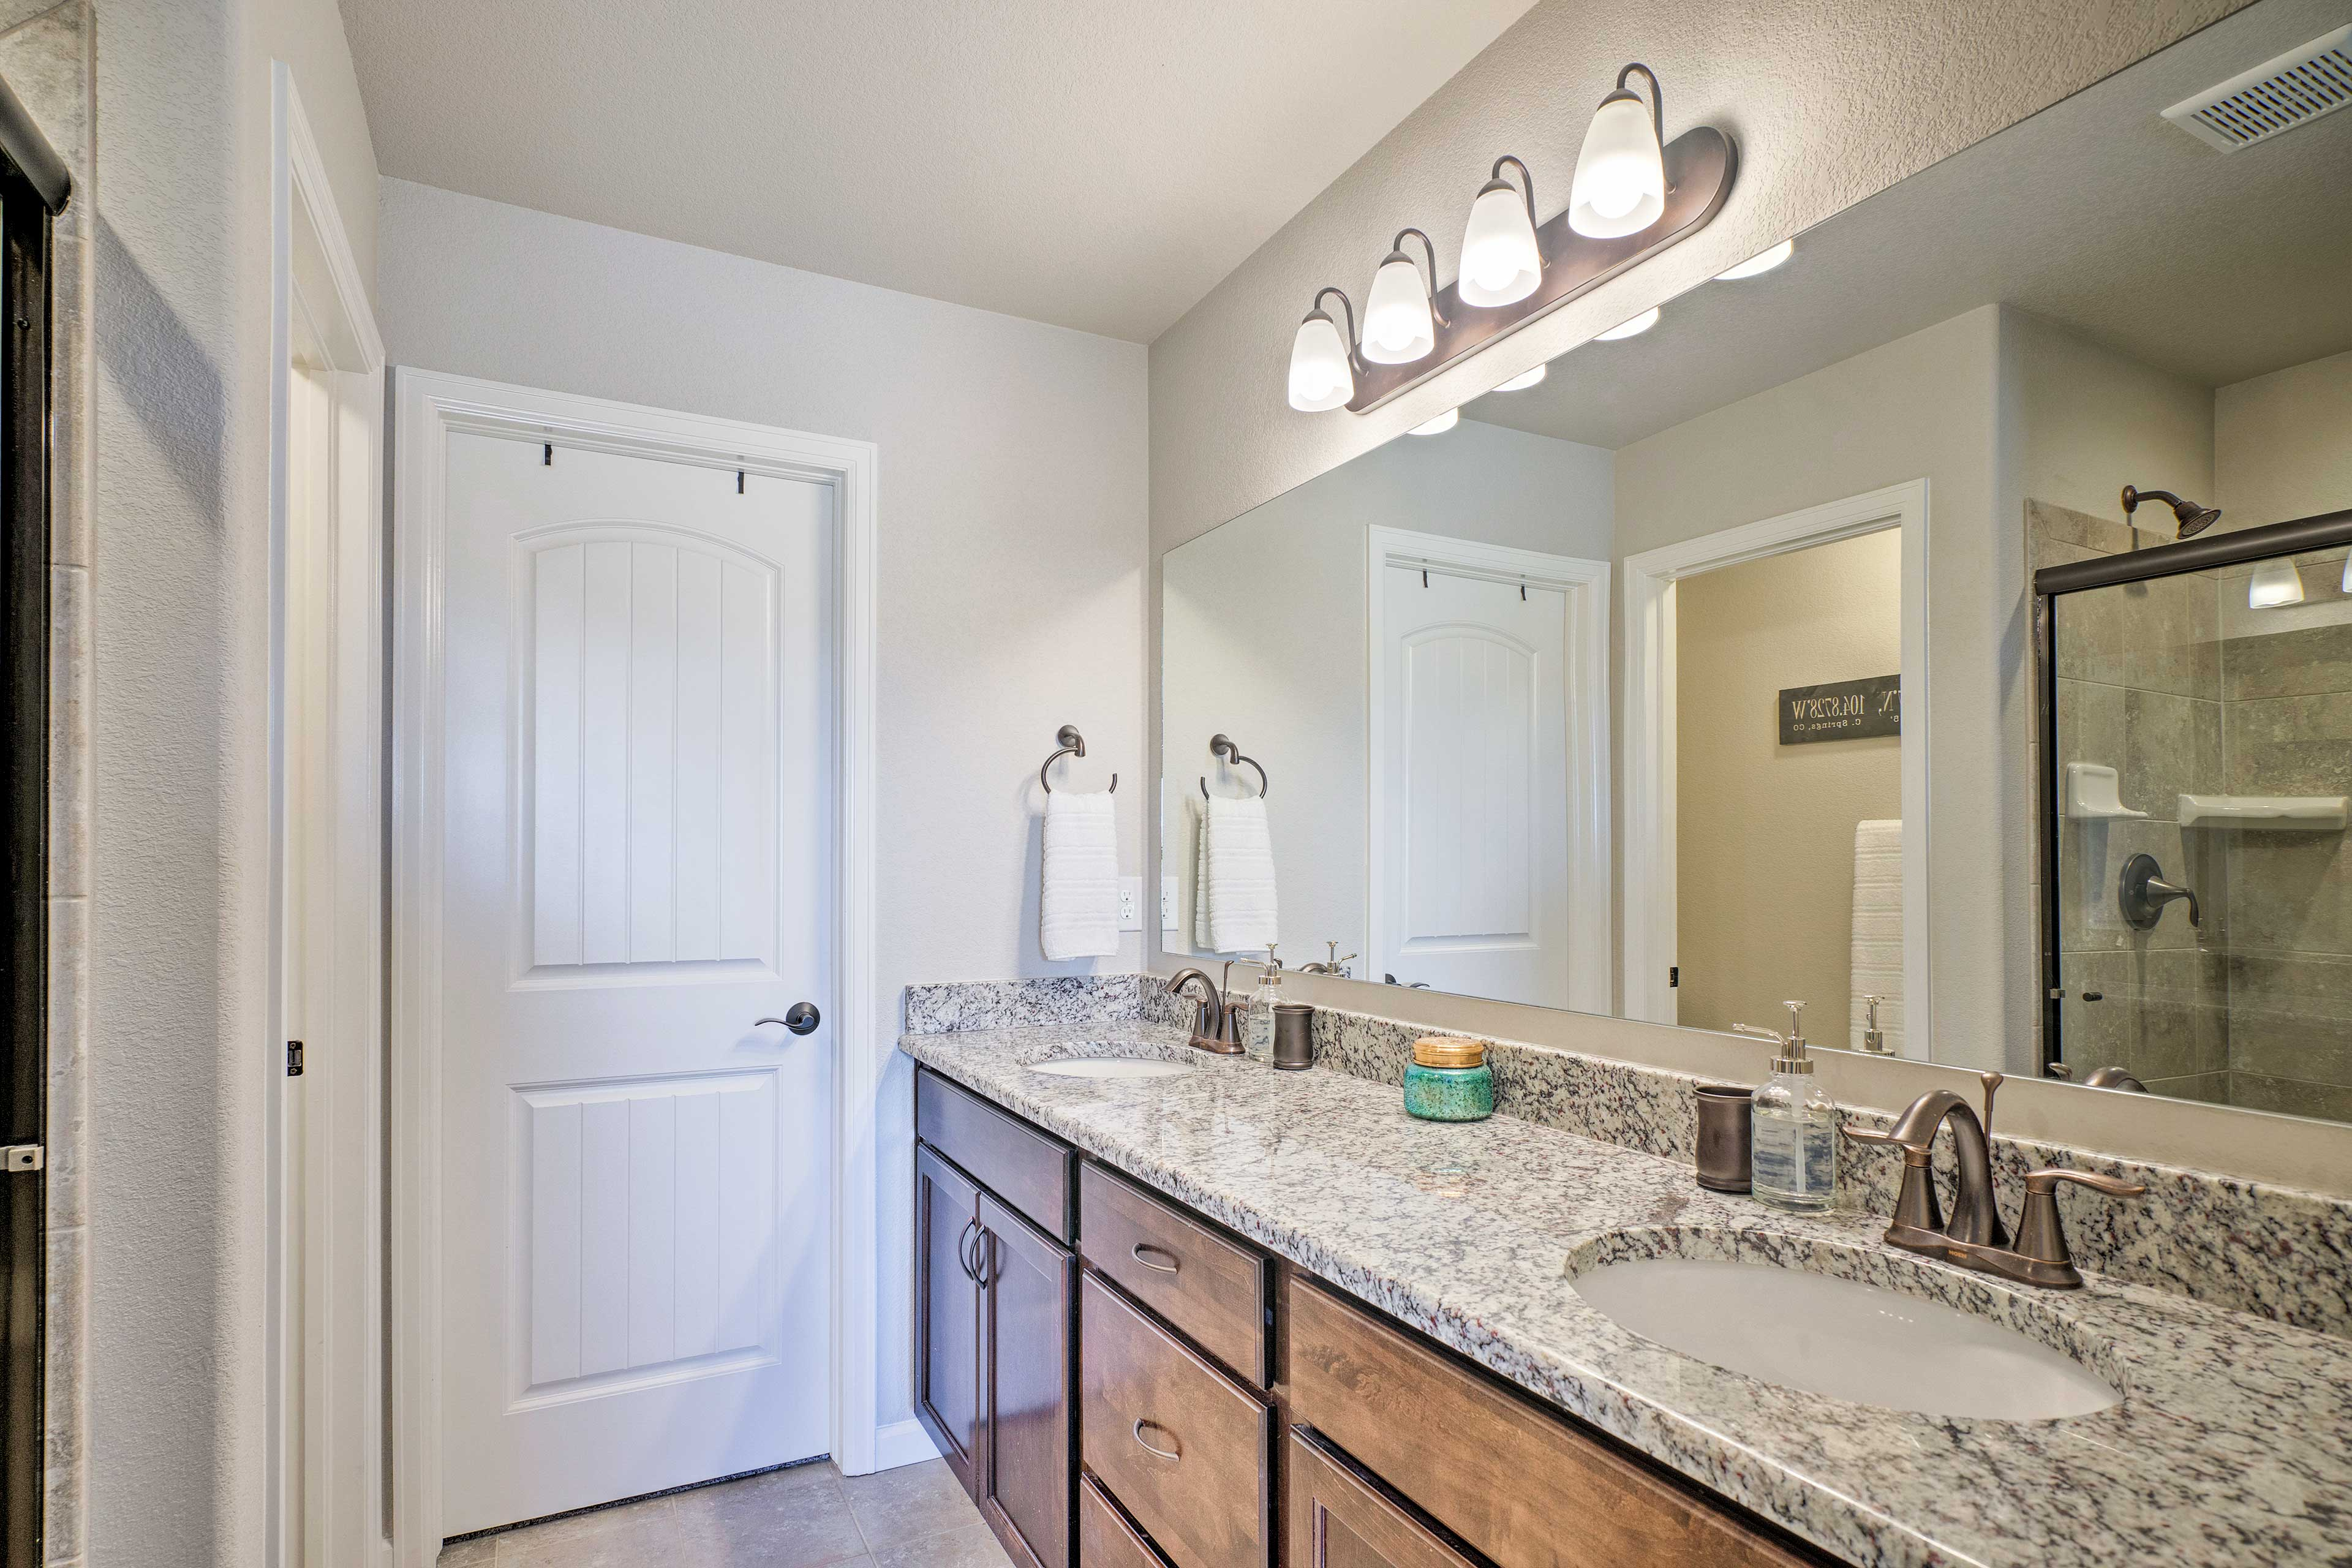 The master's en-suite bath includes double sinks and a walk-in shower.